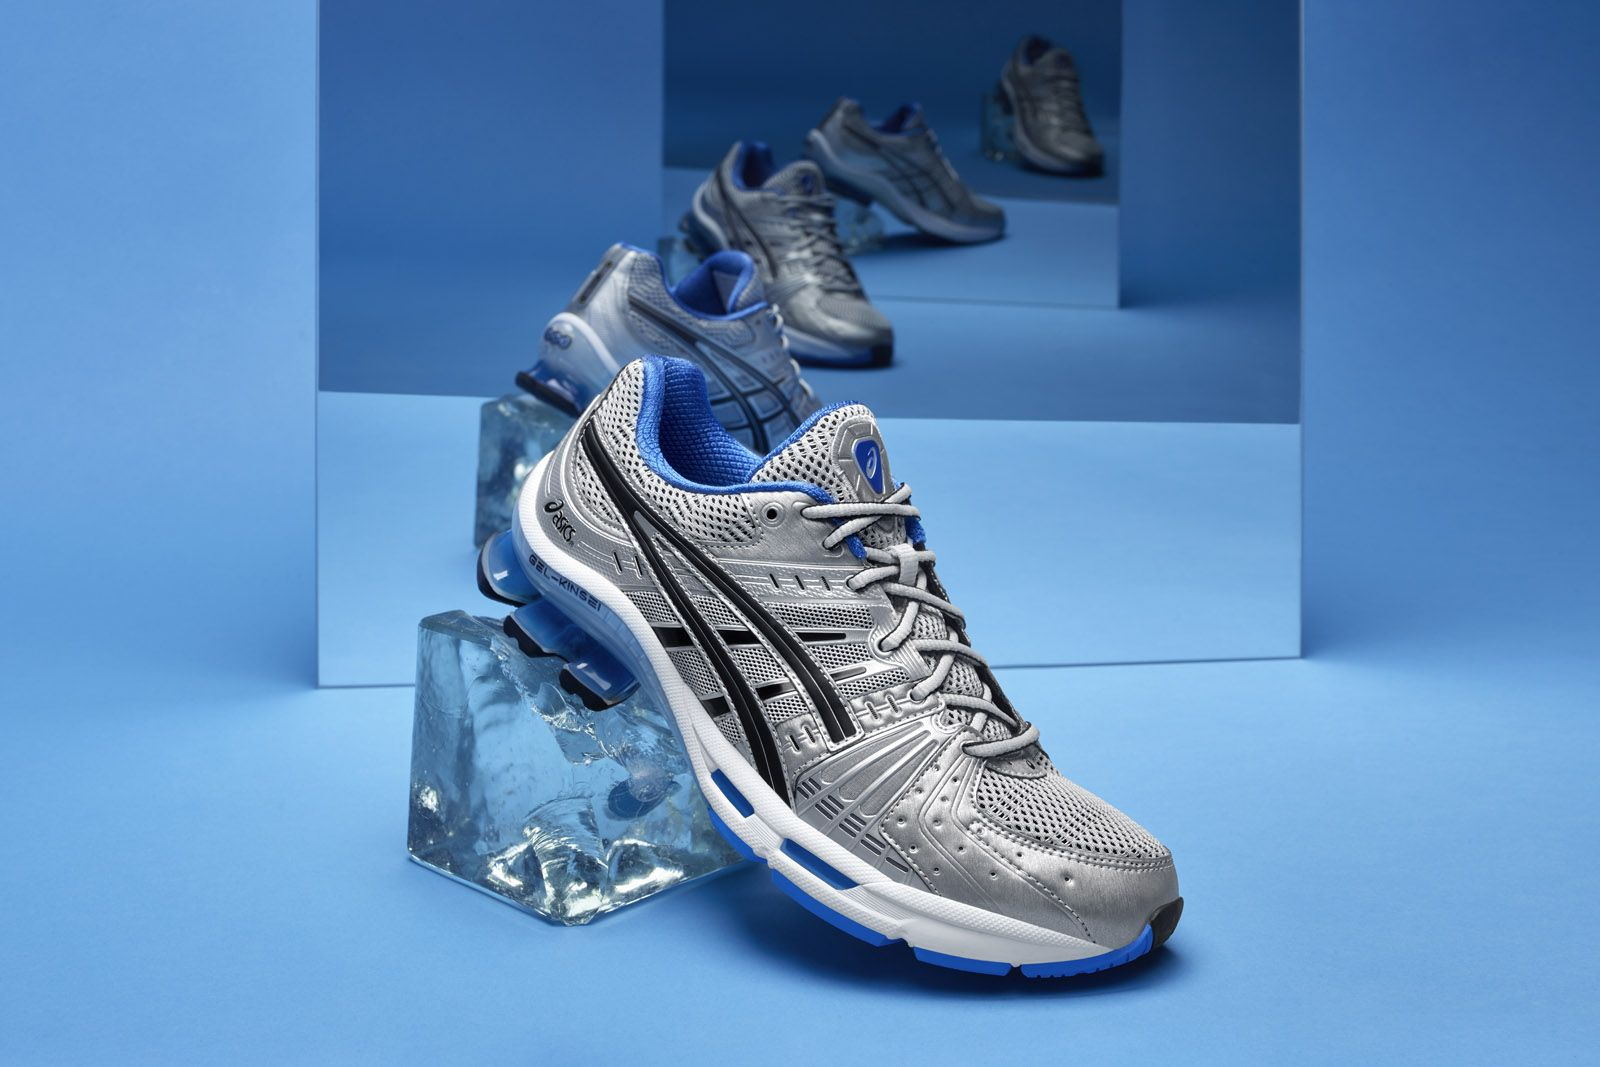 HyperFocal: 0 asics gel-kinsei